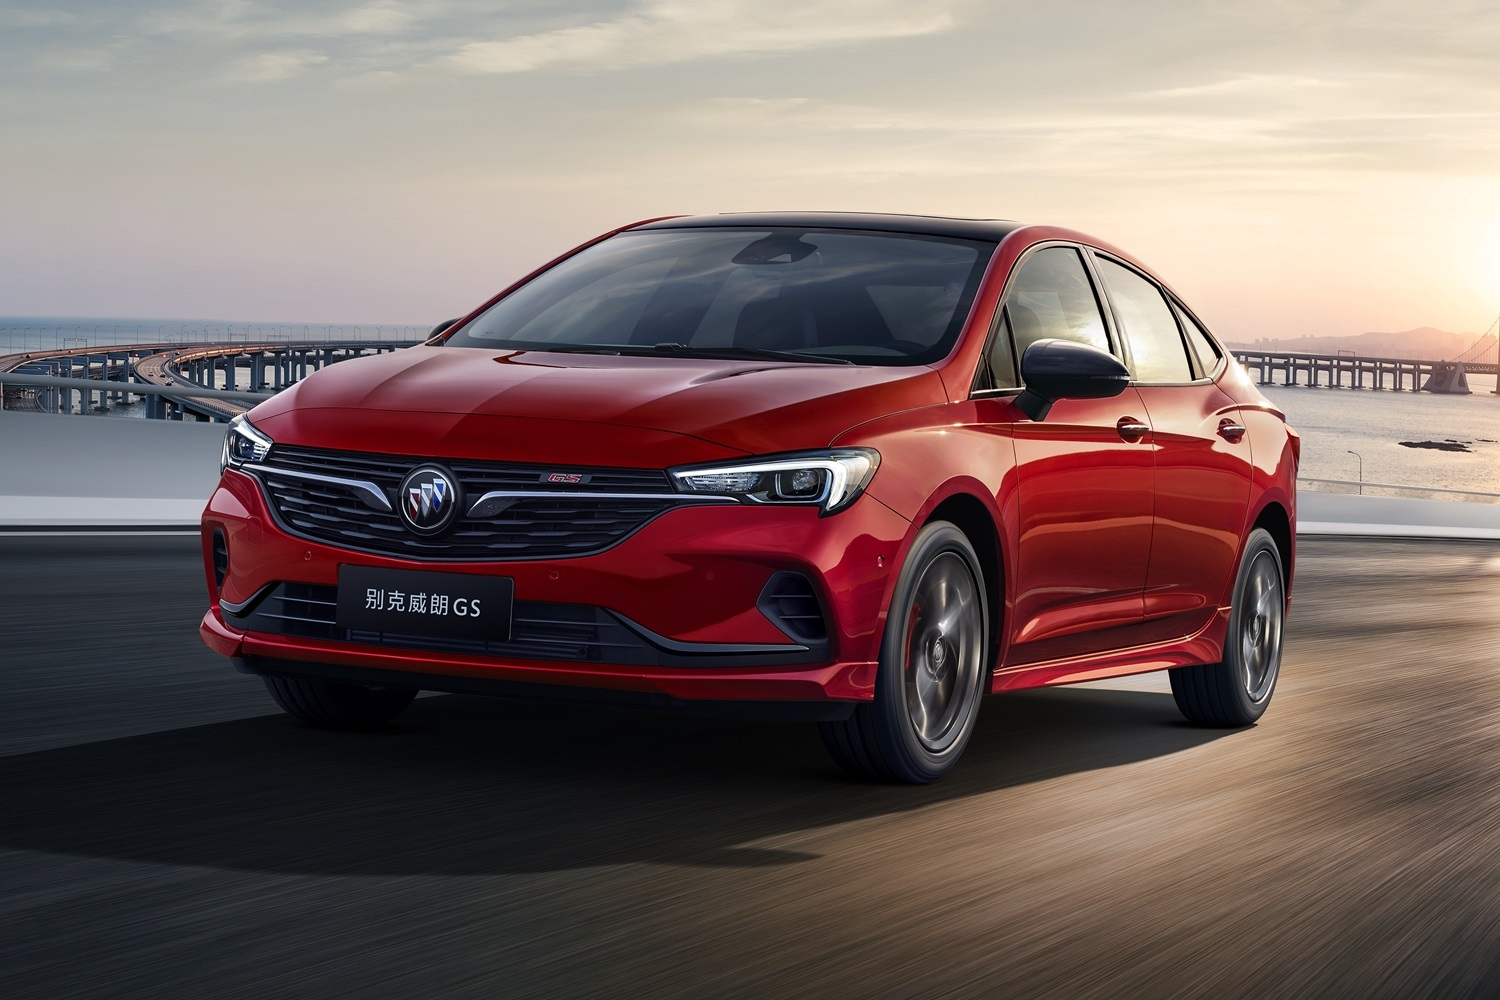 New 2021 Buick Verano Gs Launches In China | Gm Authority 2021 Buick Riviera Value, Turbocharged, Exhaust